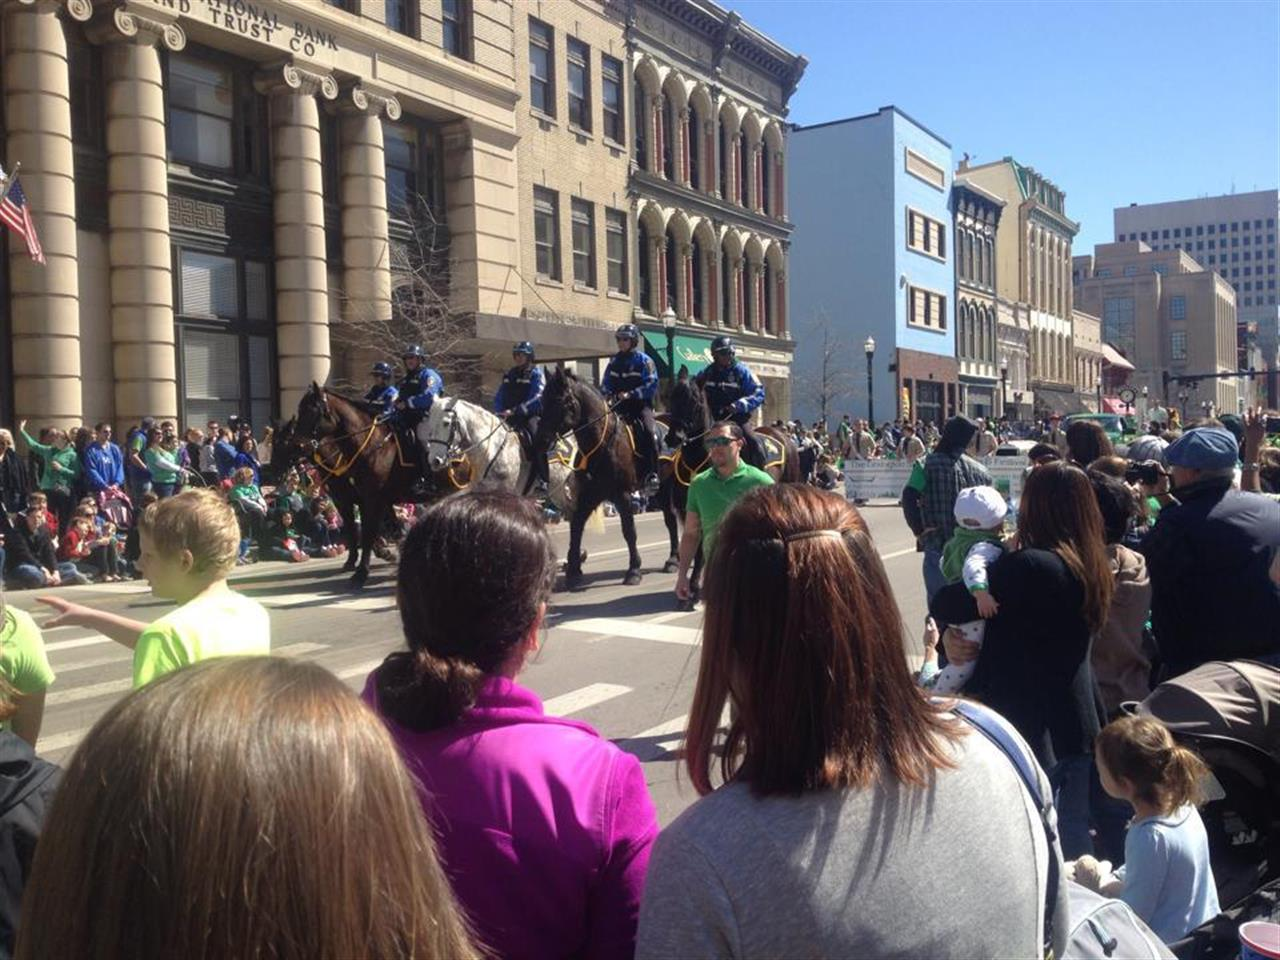 The St. Patrick's Day parade in Lexington!